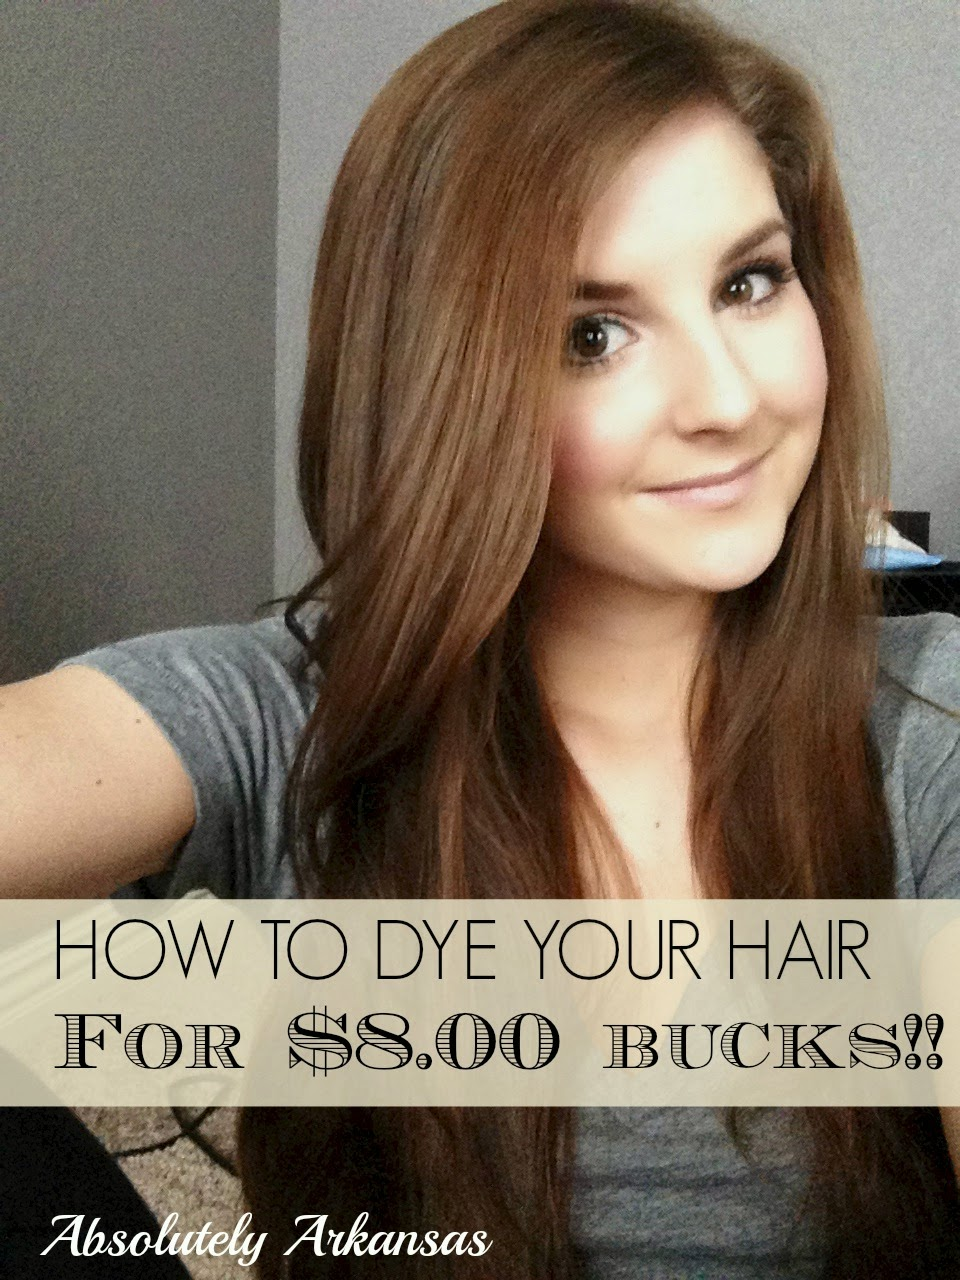 Dying Your Own Hair At Home For Eight Bucks